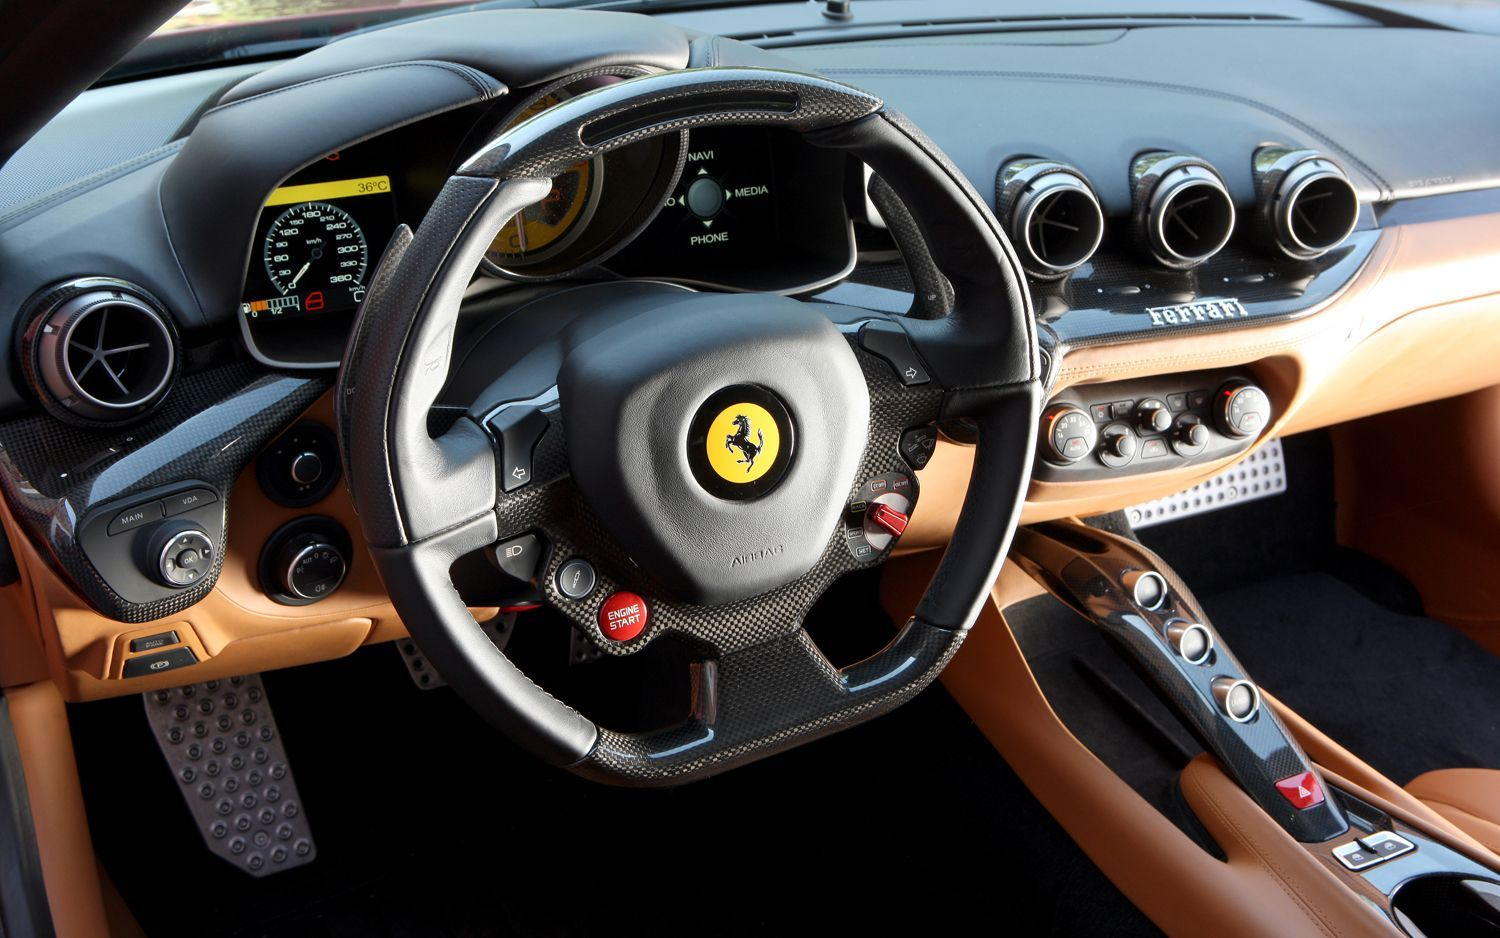 Fleeting Moments With The Ferrari F12 Berlinetta On Ignition With